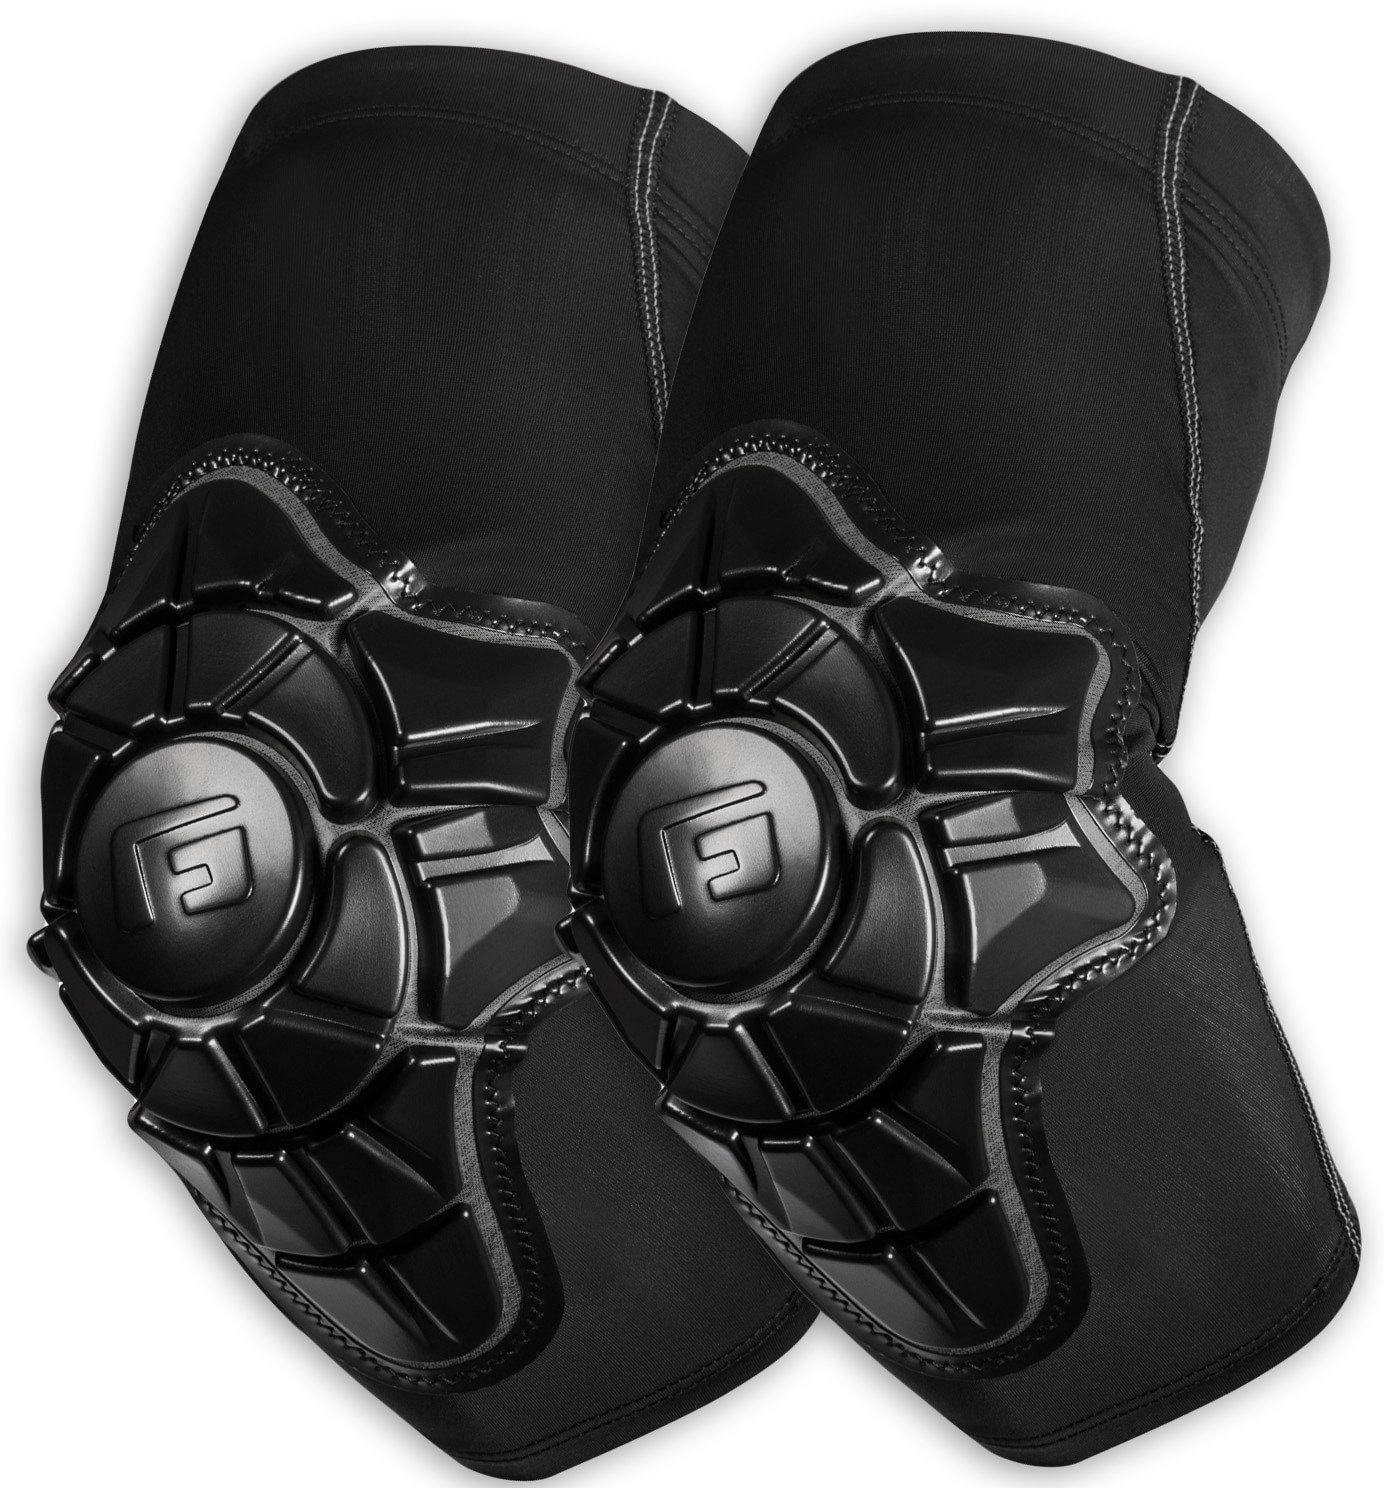 G-Form Pro-X Elbow Pads, Charcoal, Adult Small by G-Form (Image #4)